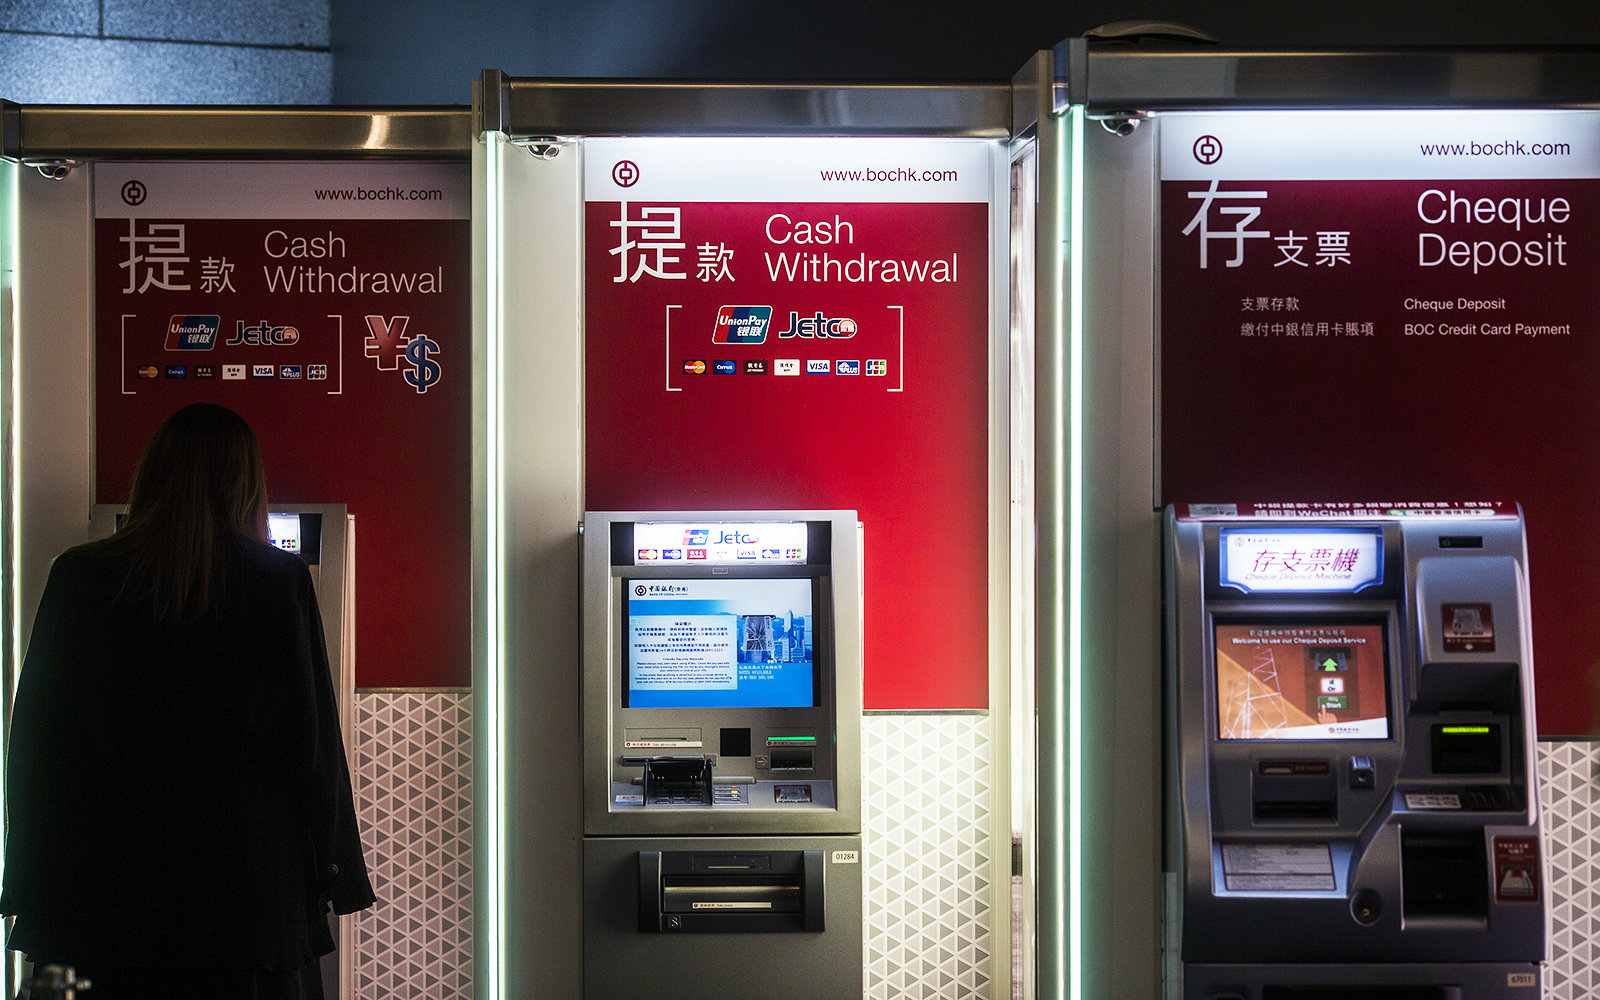 ATM money withdrawal